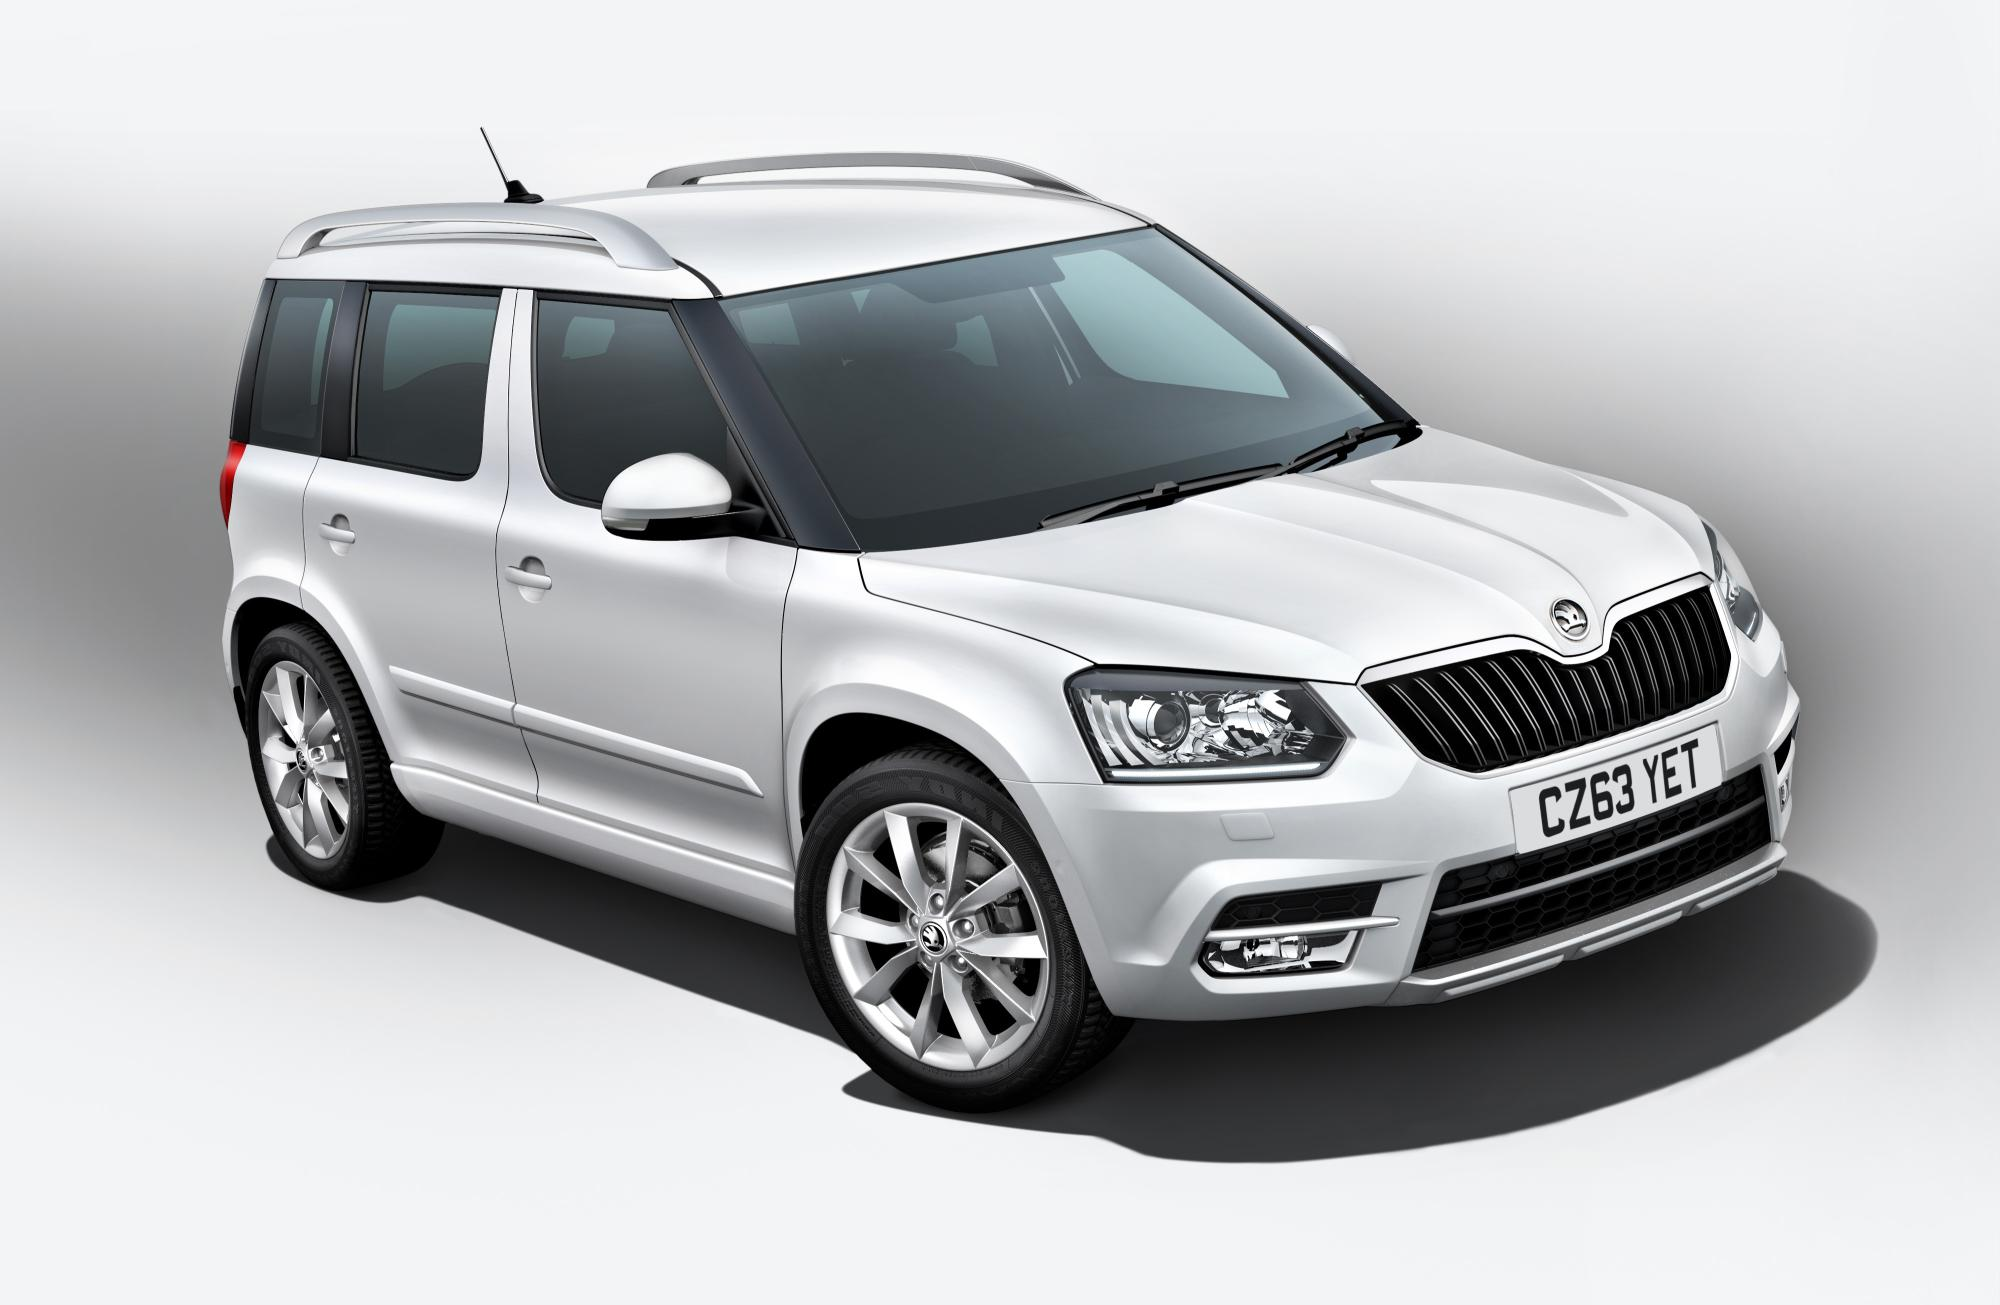 skoda yeti gets frozen to celebrate its uk launch. Black Bedroom Furniture Sets. Home Design Ideas